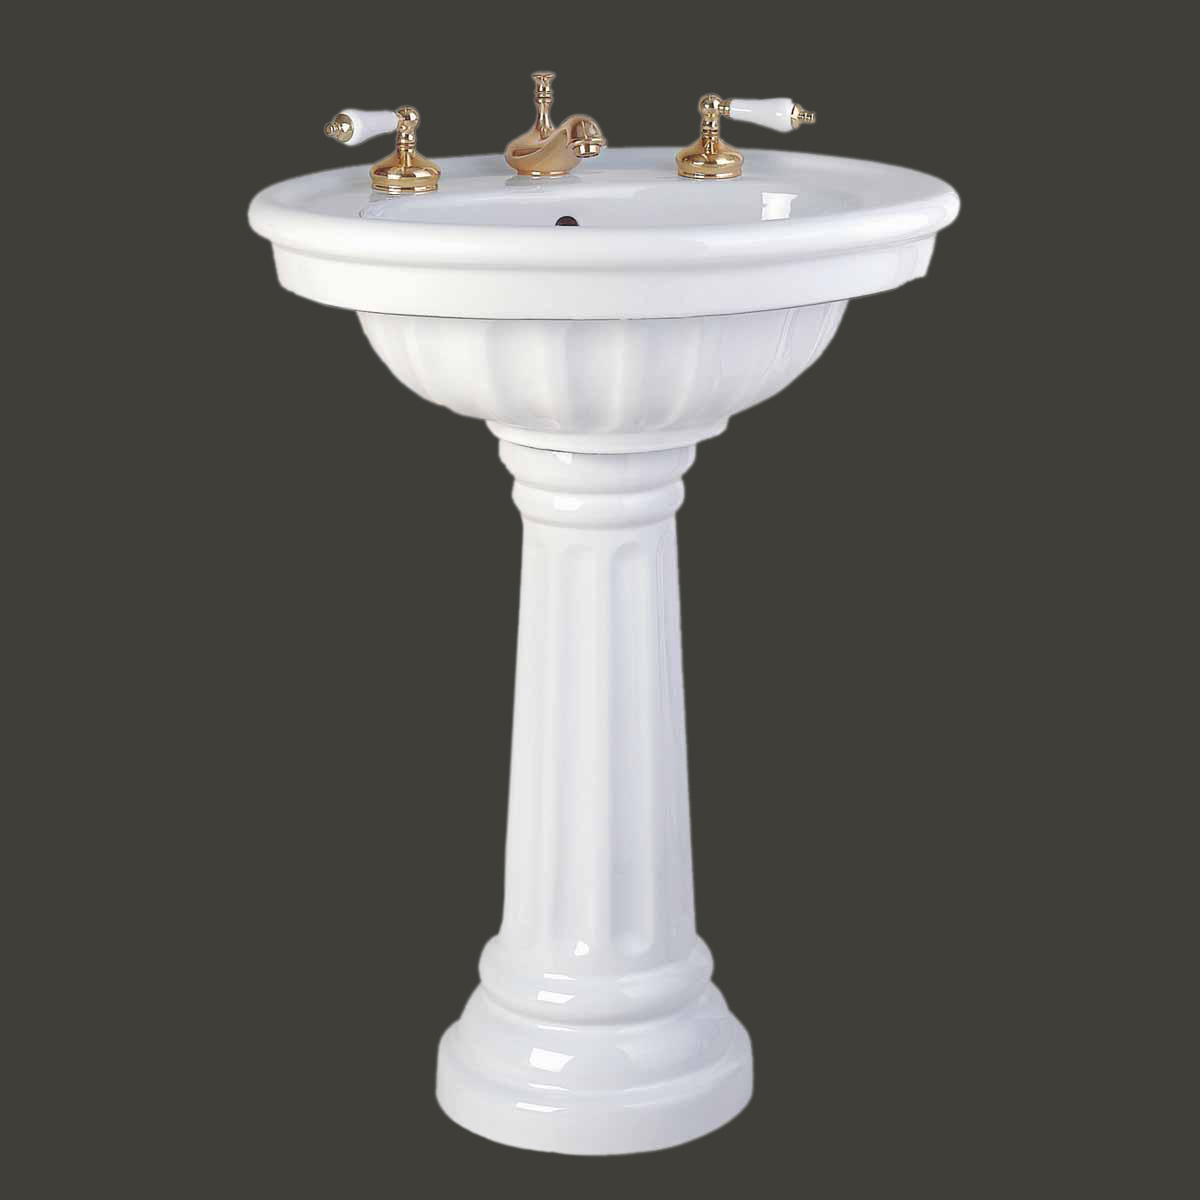 Bathroom Sink Mirror : Home Plumbing Pedestal Sinks Medium Pedestal Sinks